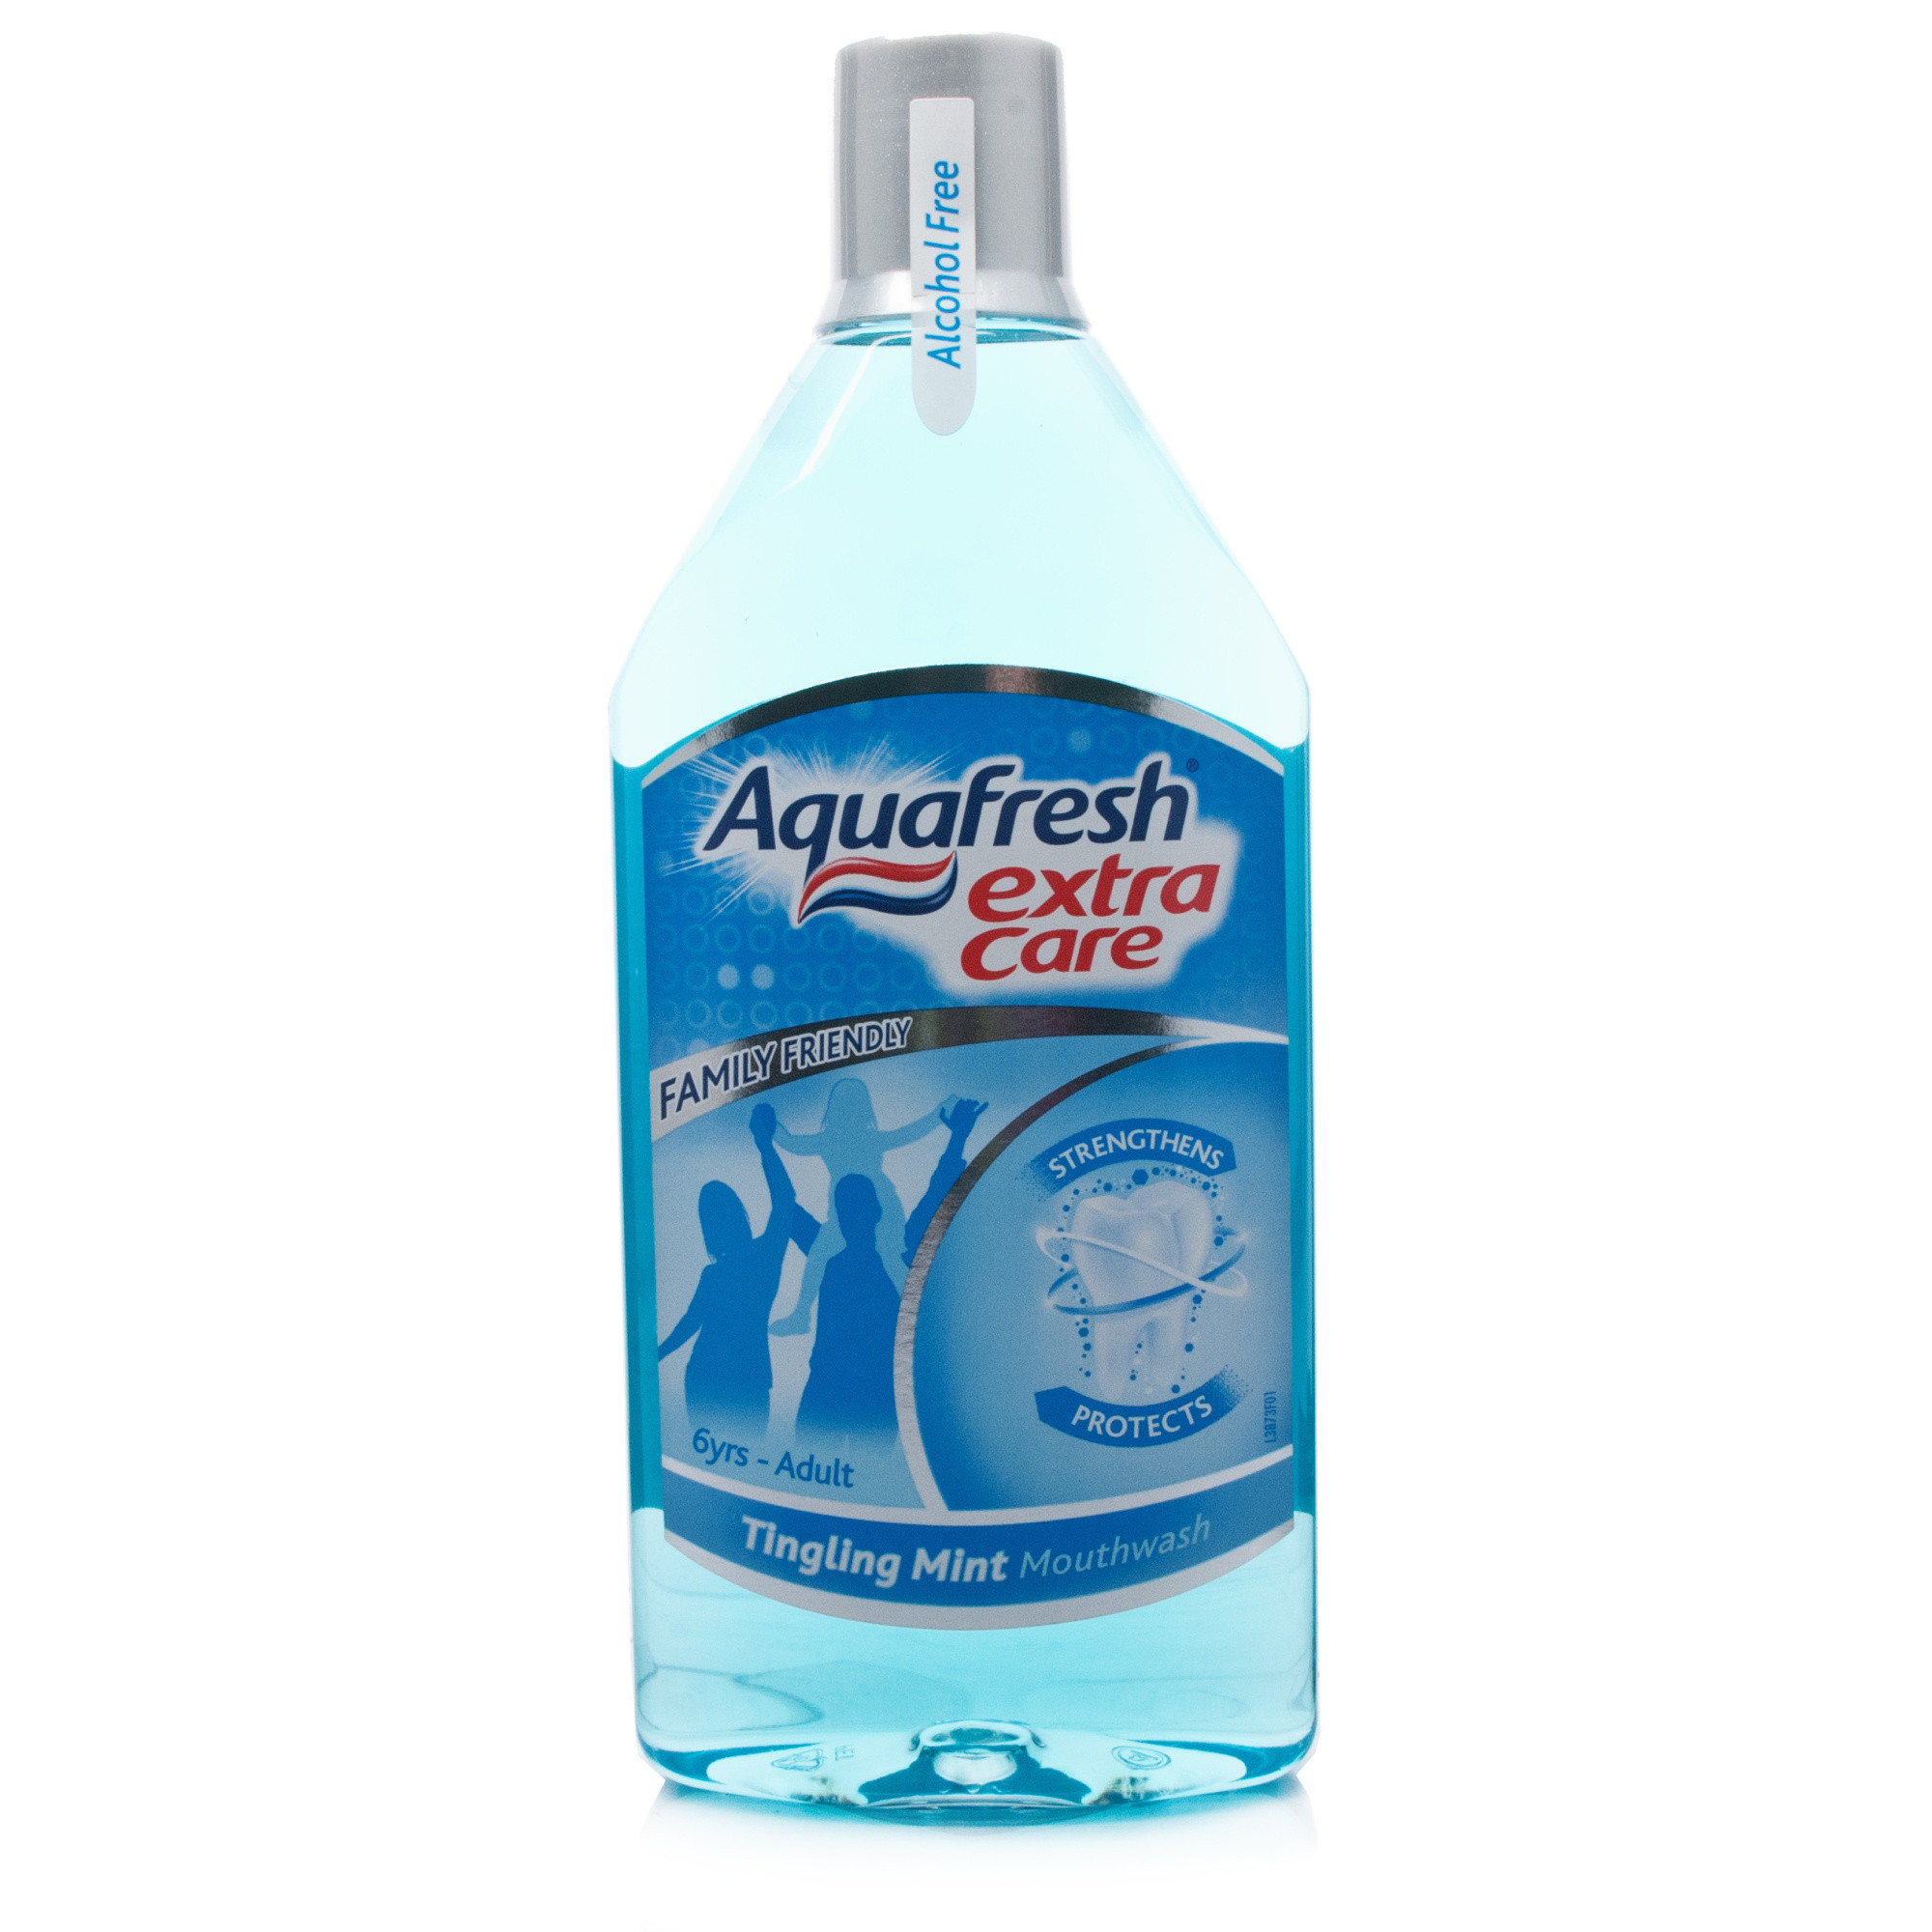 Aquafresh Extra Care Mouthwash Tingling Mint